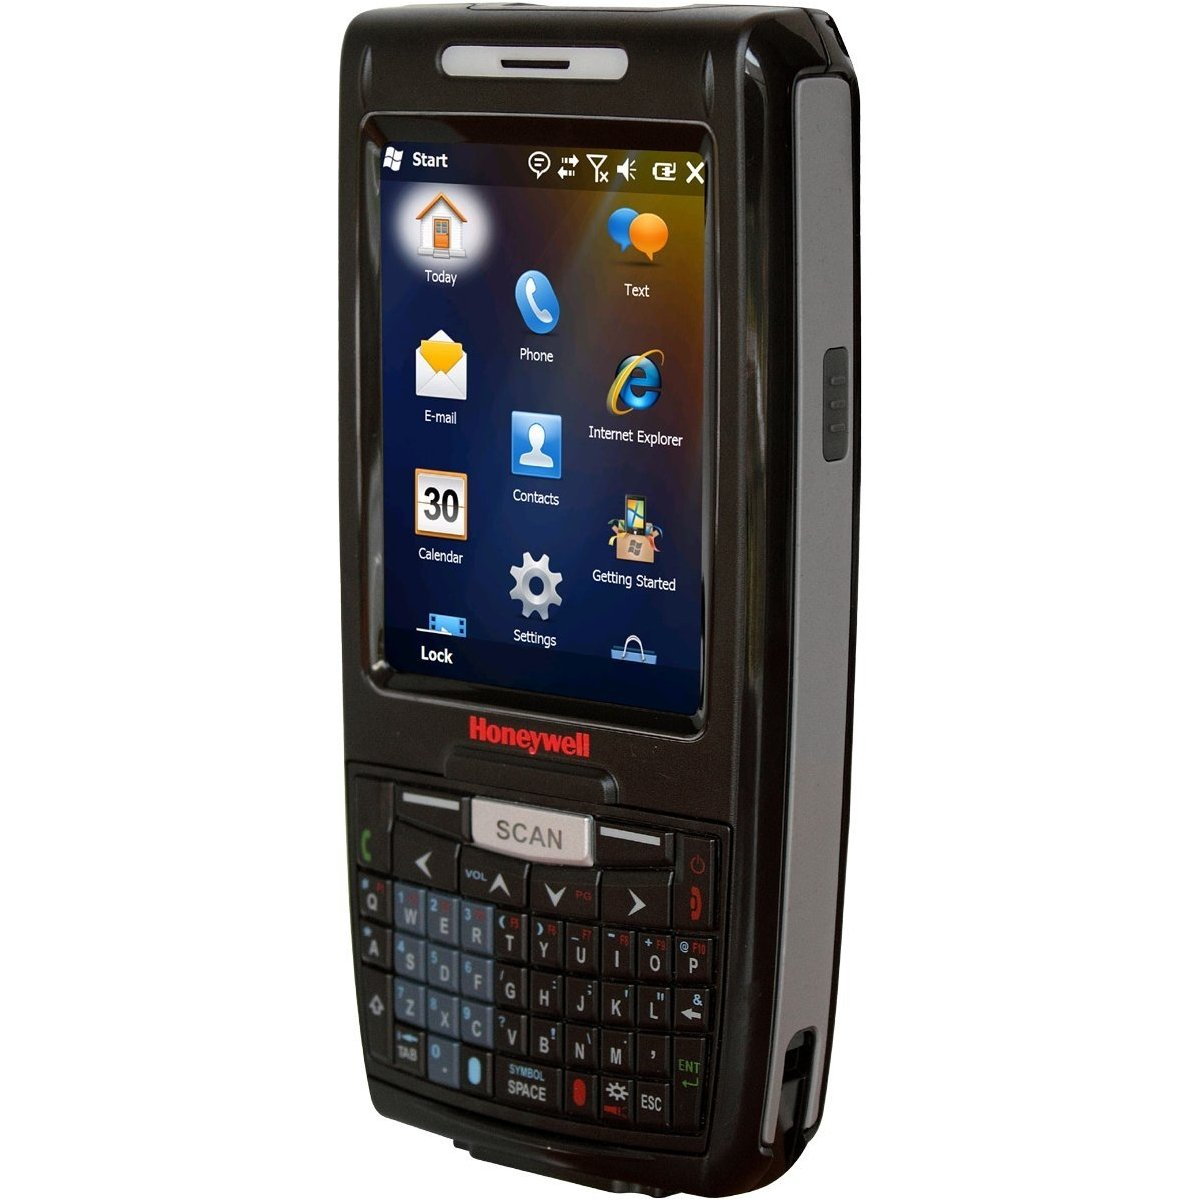 Honeywell 7800LCQ-G0111XEV Dolphin 7800 Mobile Computer, Bluetooth, CDMA and EVDO for Verizon, Extended Range Imager with Laser Aimer, QWERTY, WEH 6.5, Ext. Battery